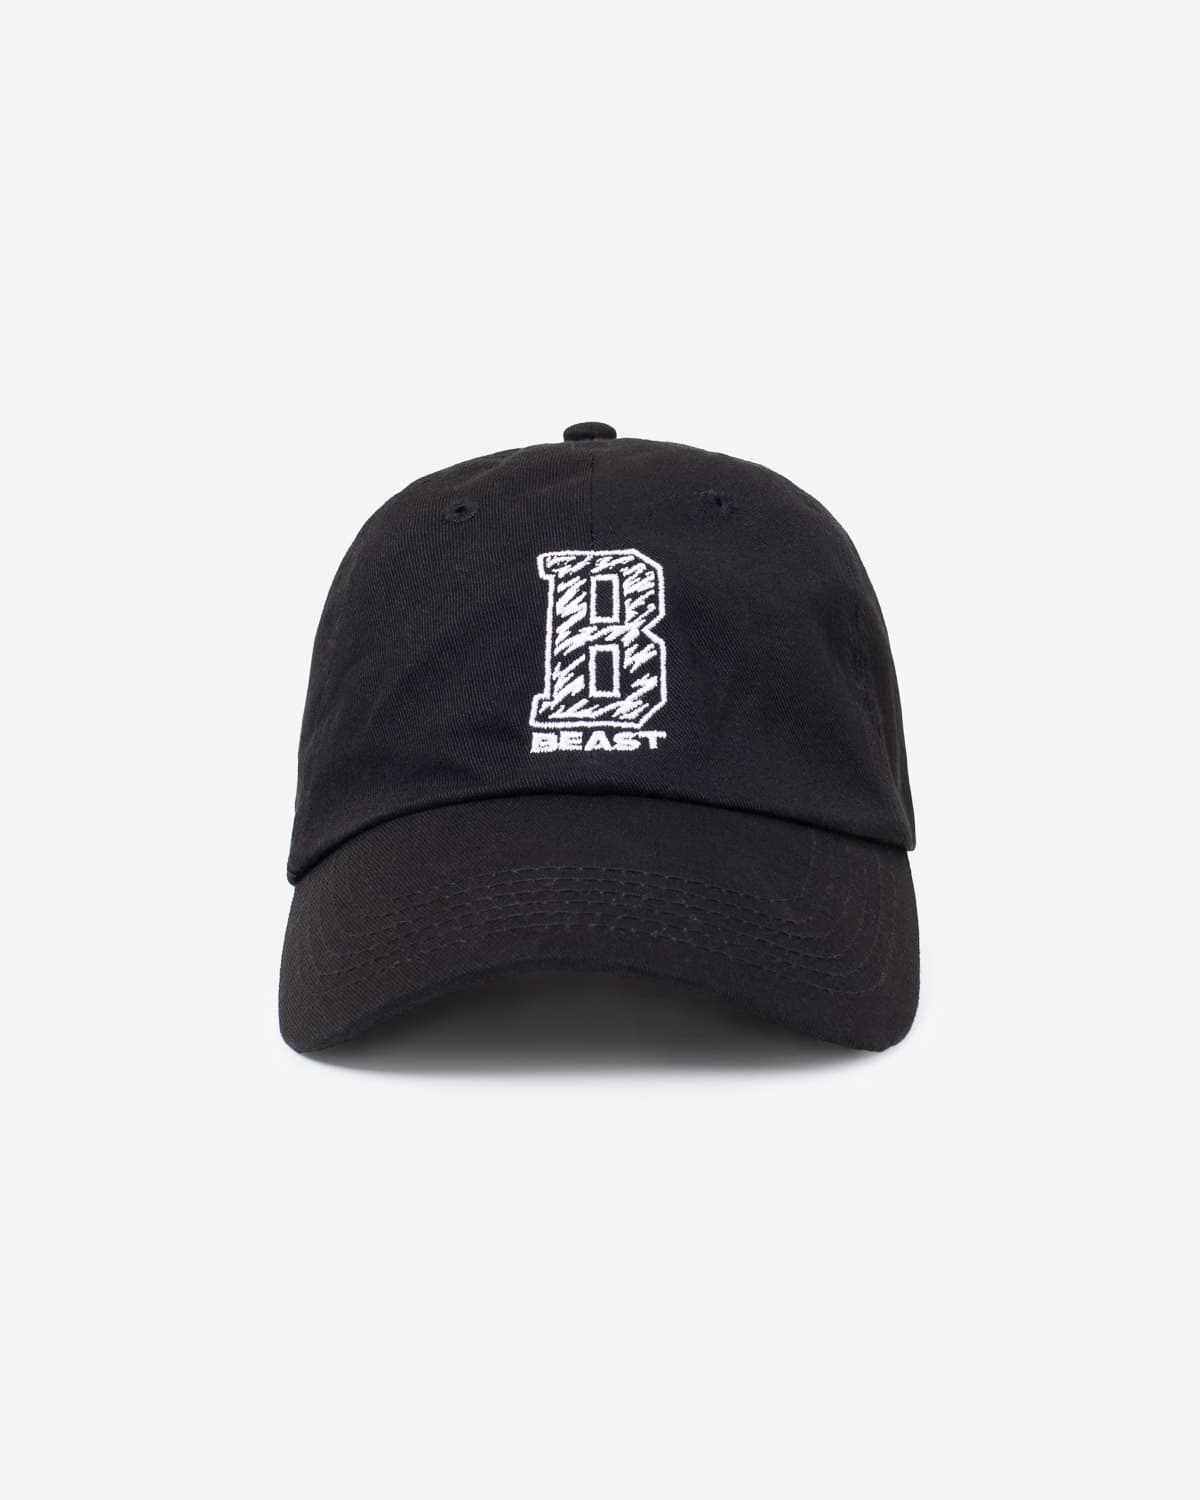 B for Beast Dad Hat